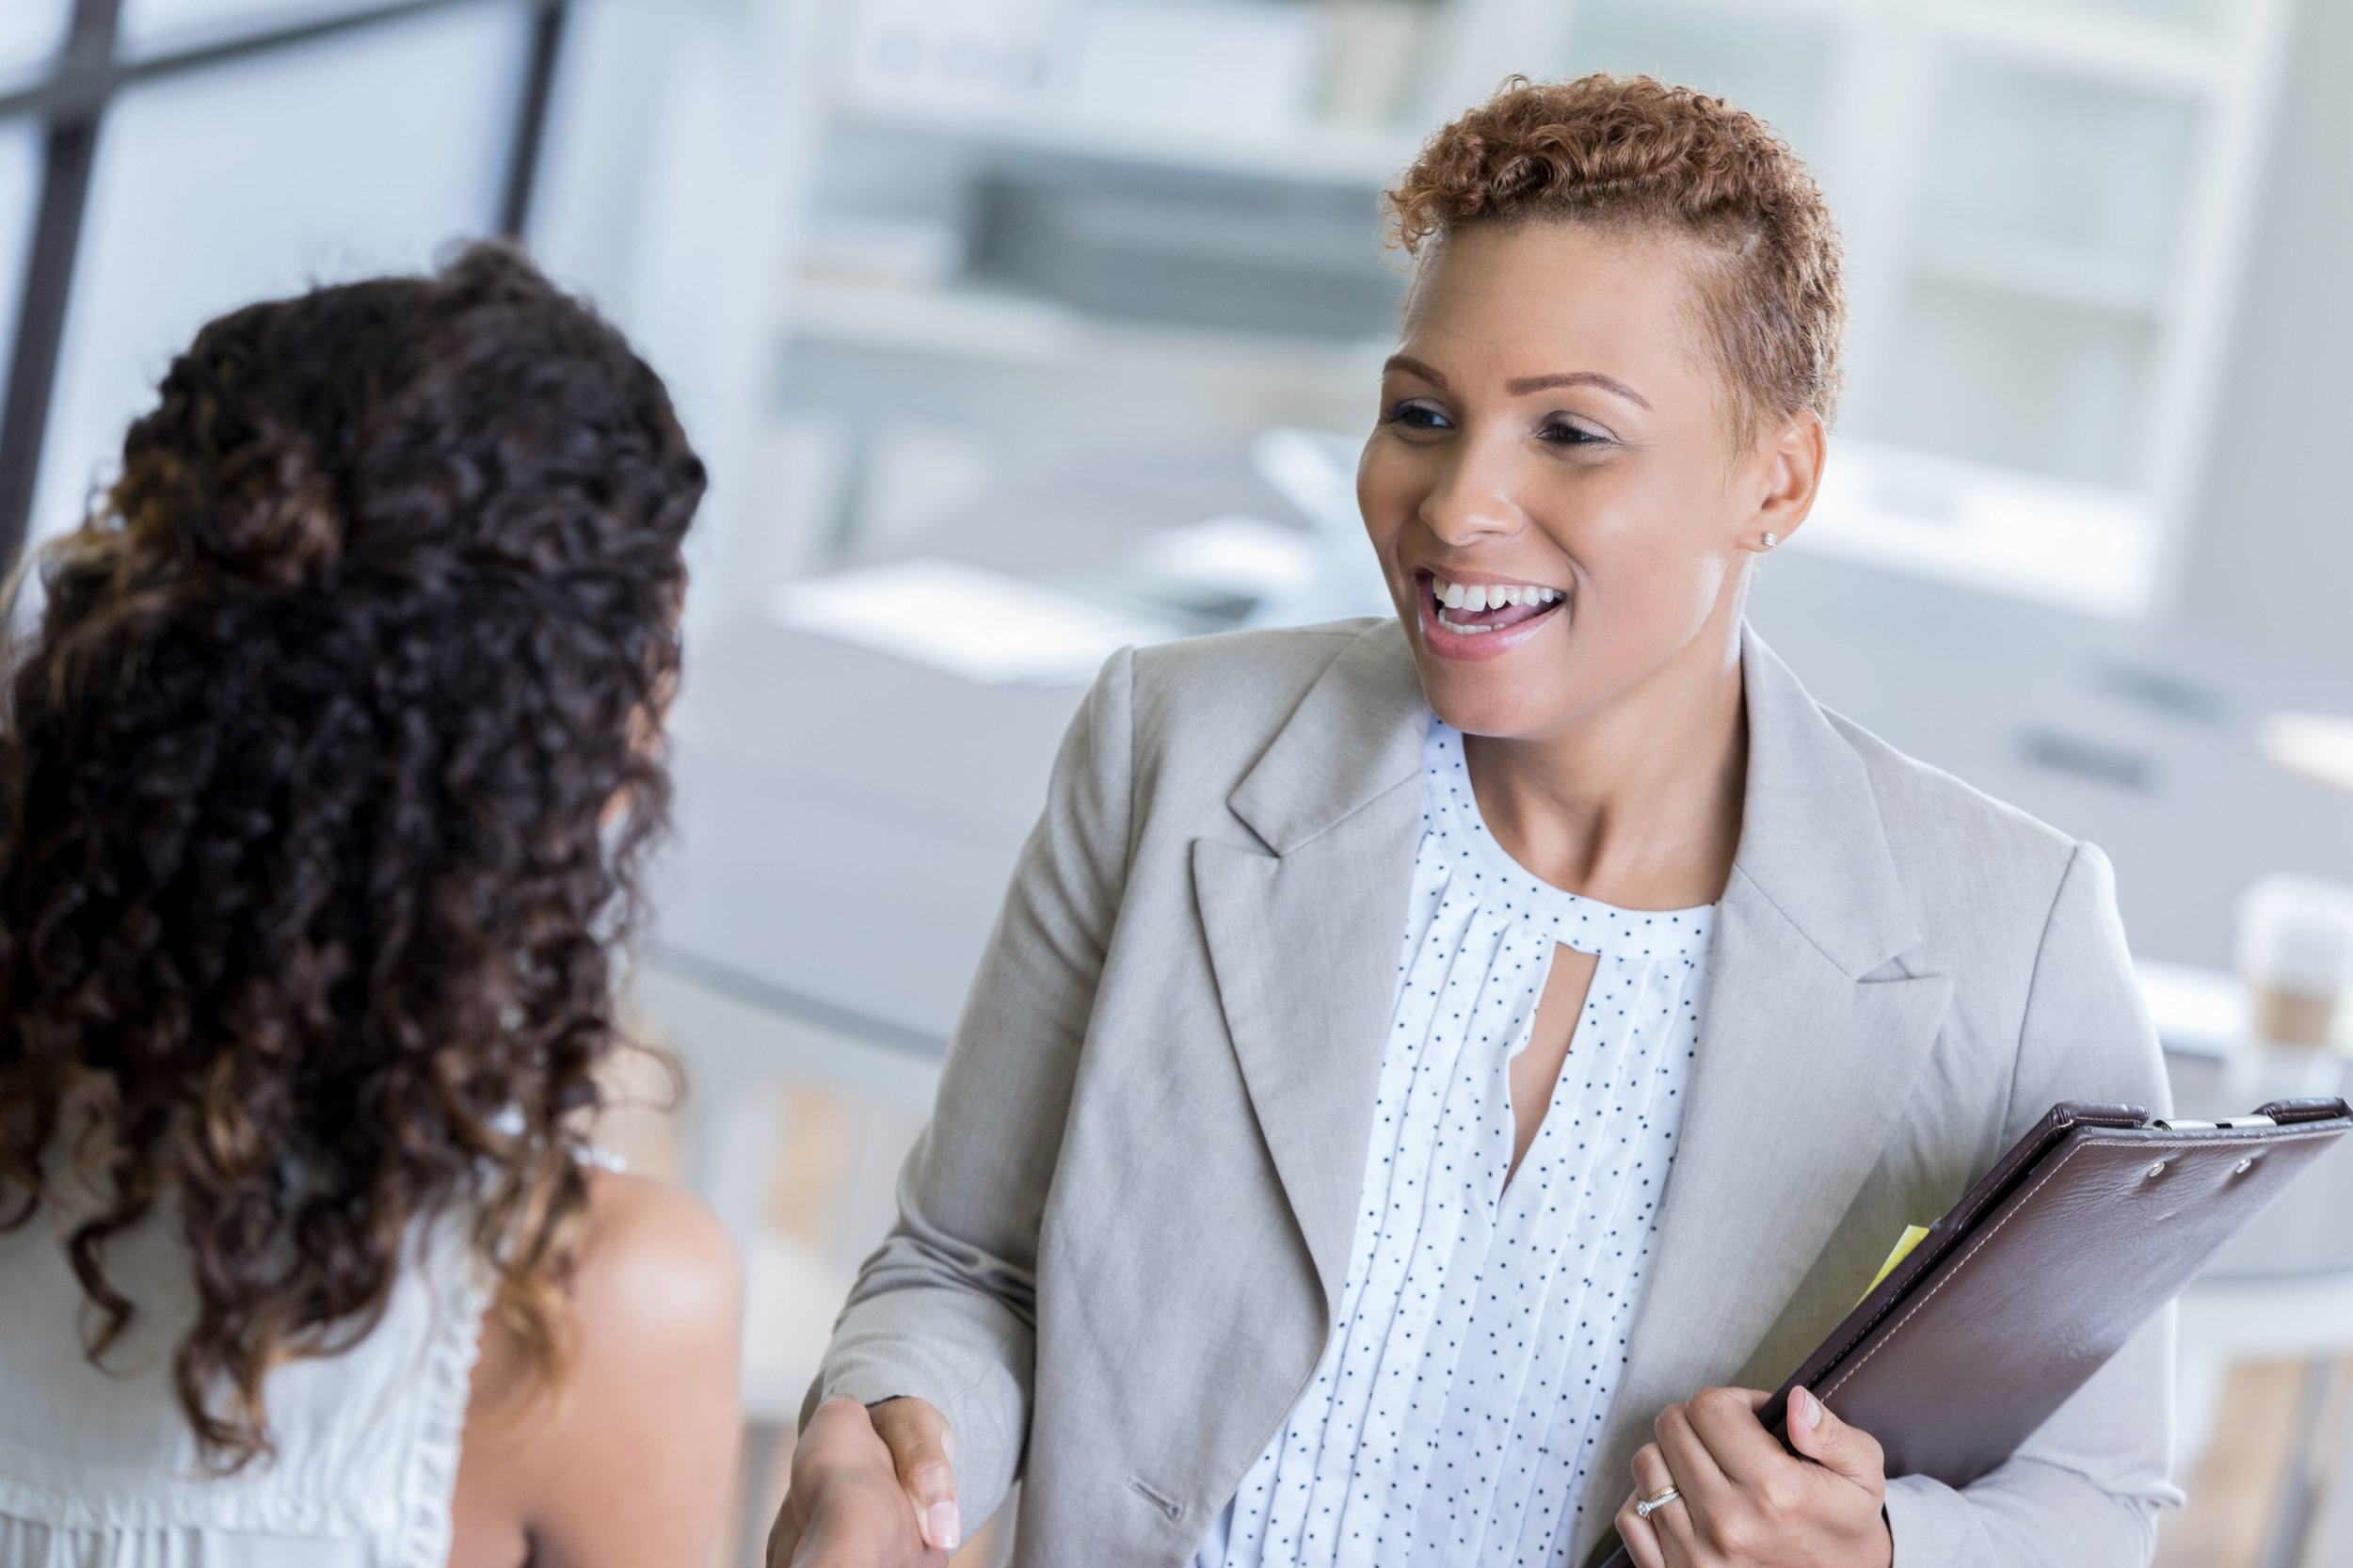 Solutions to Staff any Business - Whether looking to fill temporary, temp to hire, or specialized employment, we're here to make the hiring process cost-effective and efficient.